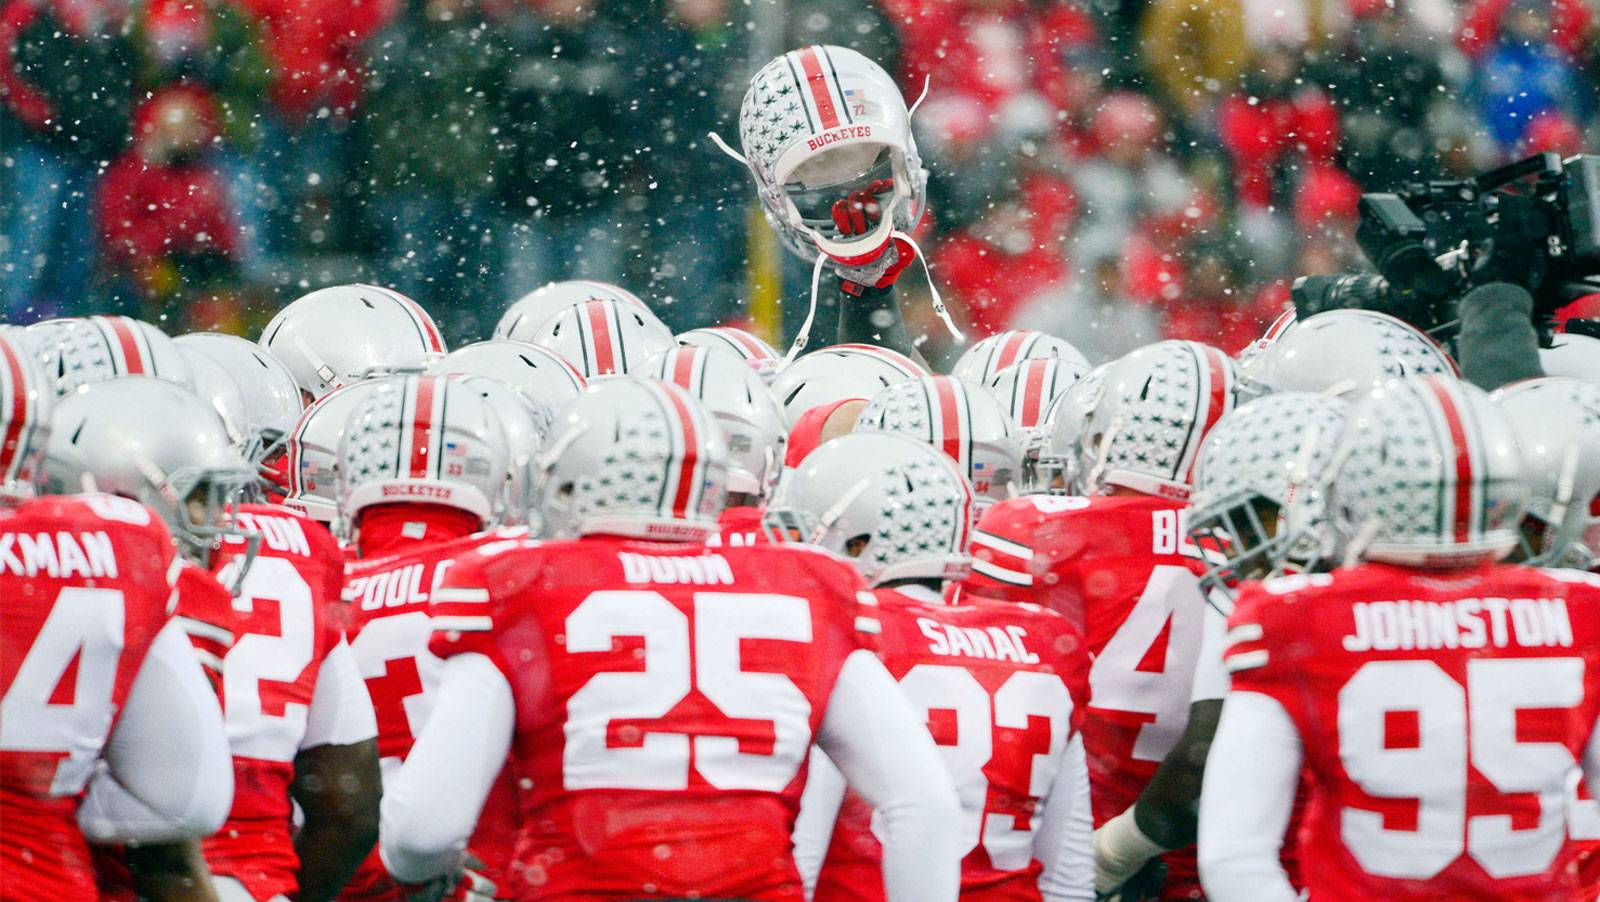 Ohio State Hoping to Avoid Letdown as Double-Digit Favorite at Iowa